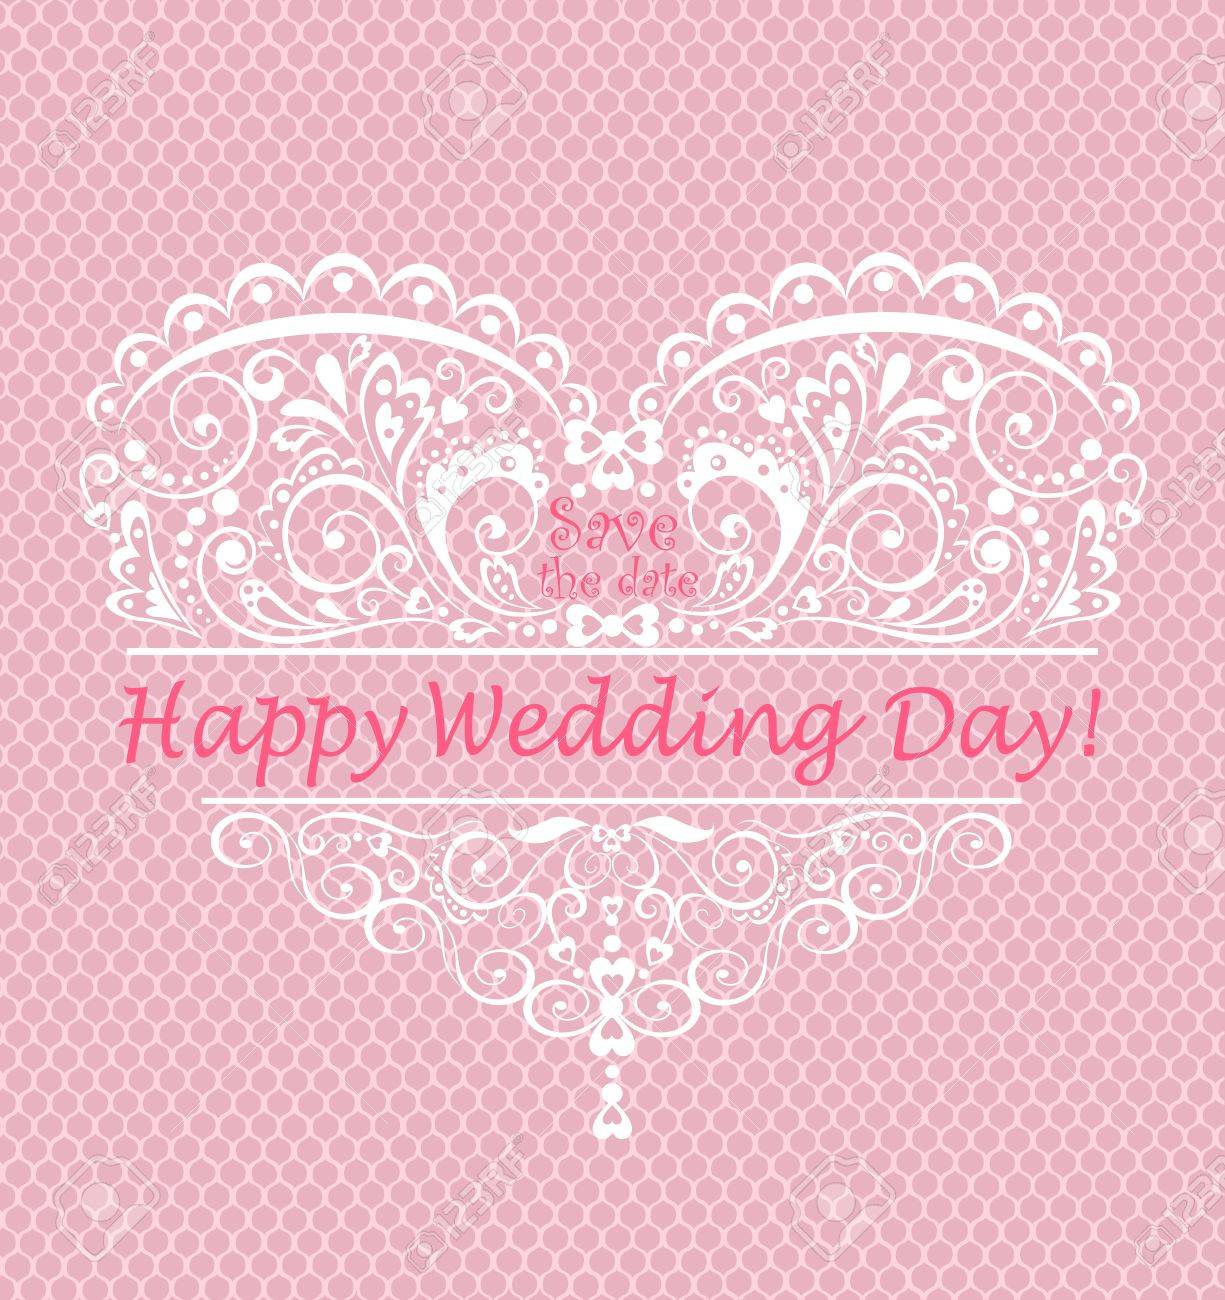 Beautiful Greeting For Wedding Day Royalty Free Cliparts Vectors